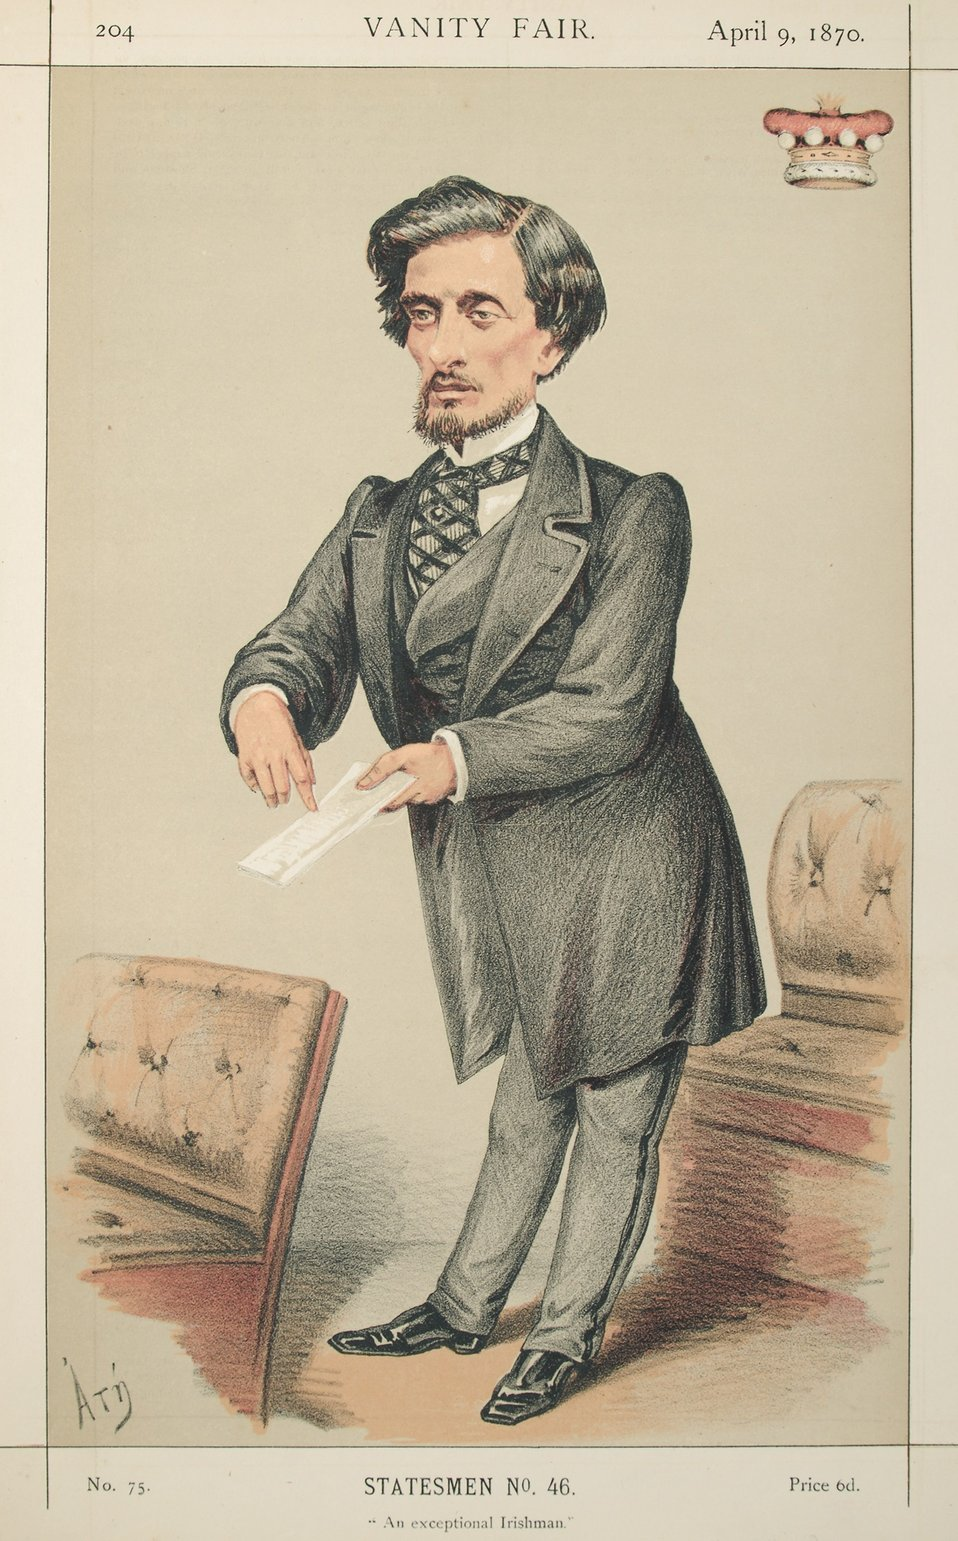 Statesmen No.46: Caricature of Lord Dufferin.  Caption reads: 'An exceptional Irishman.'